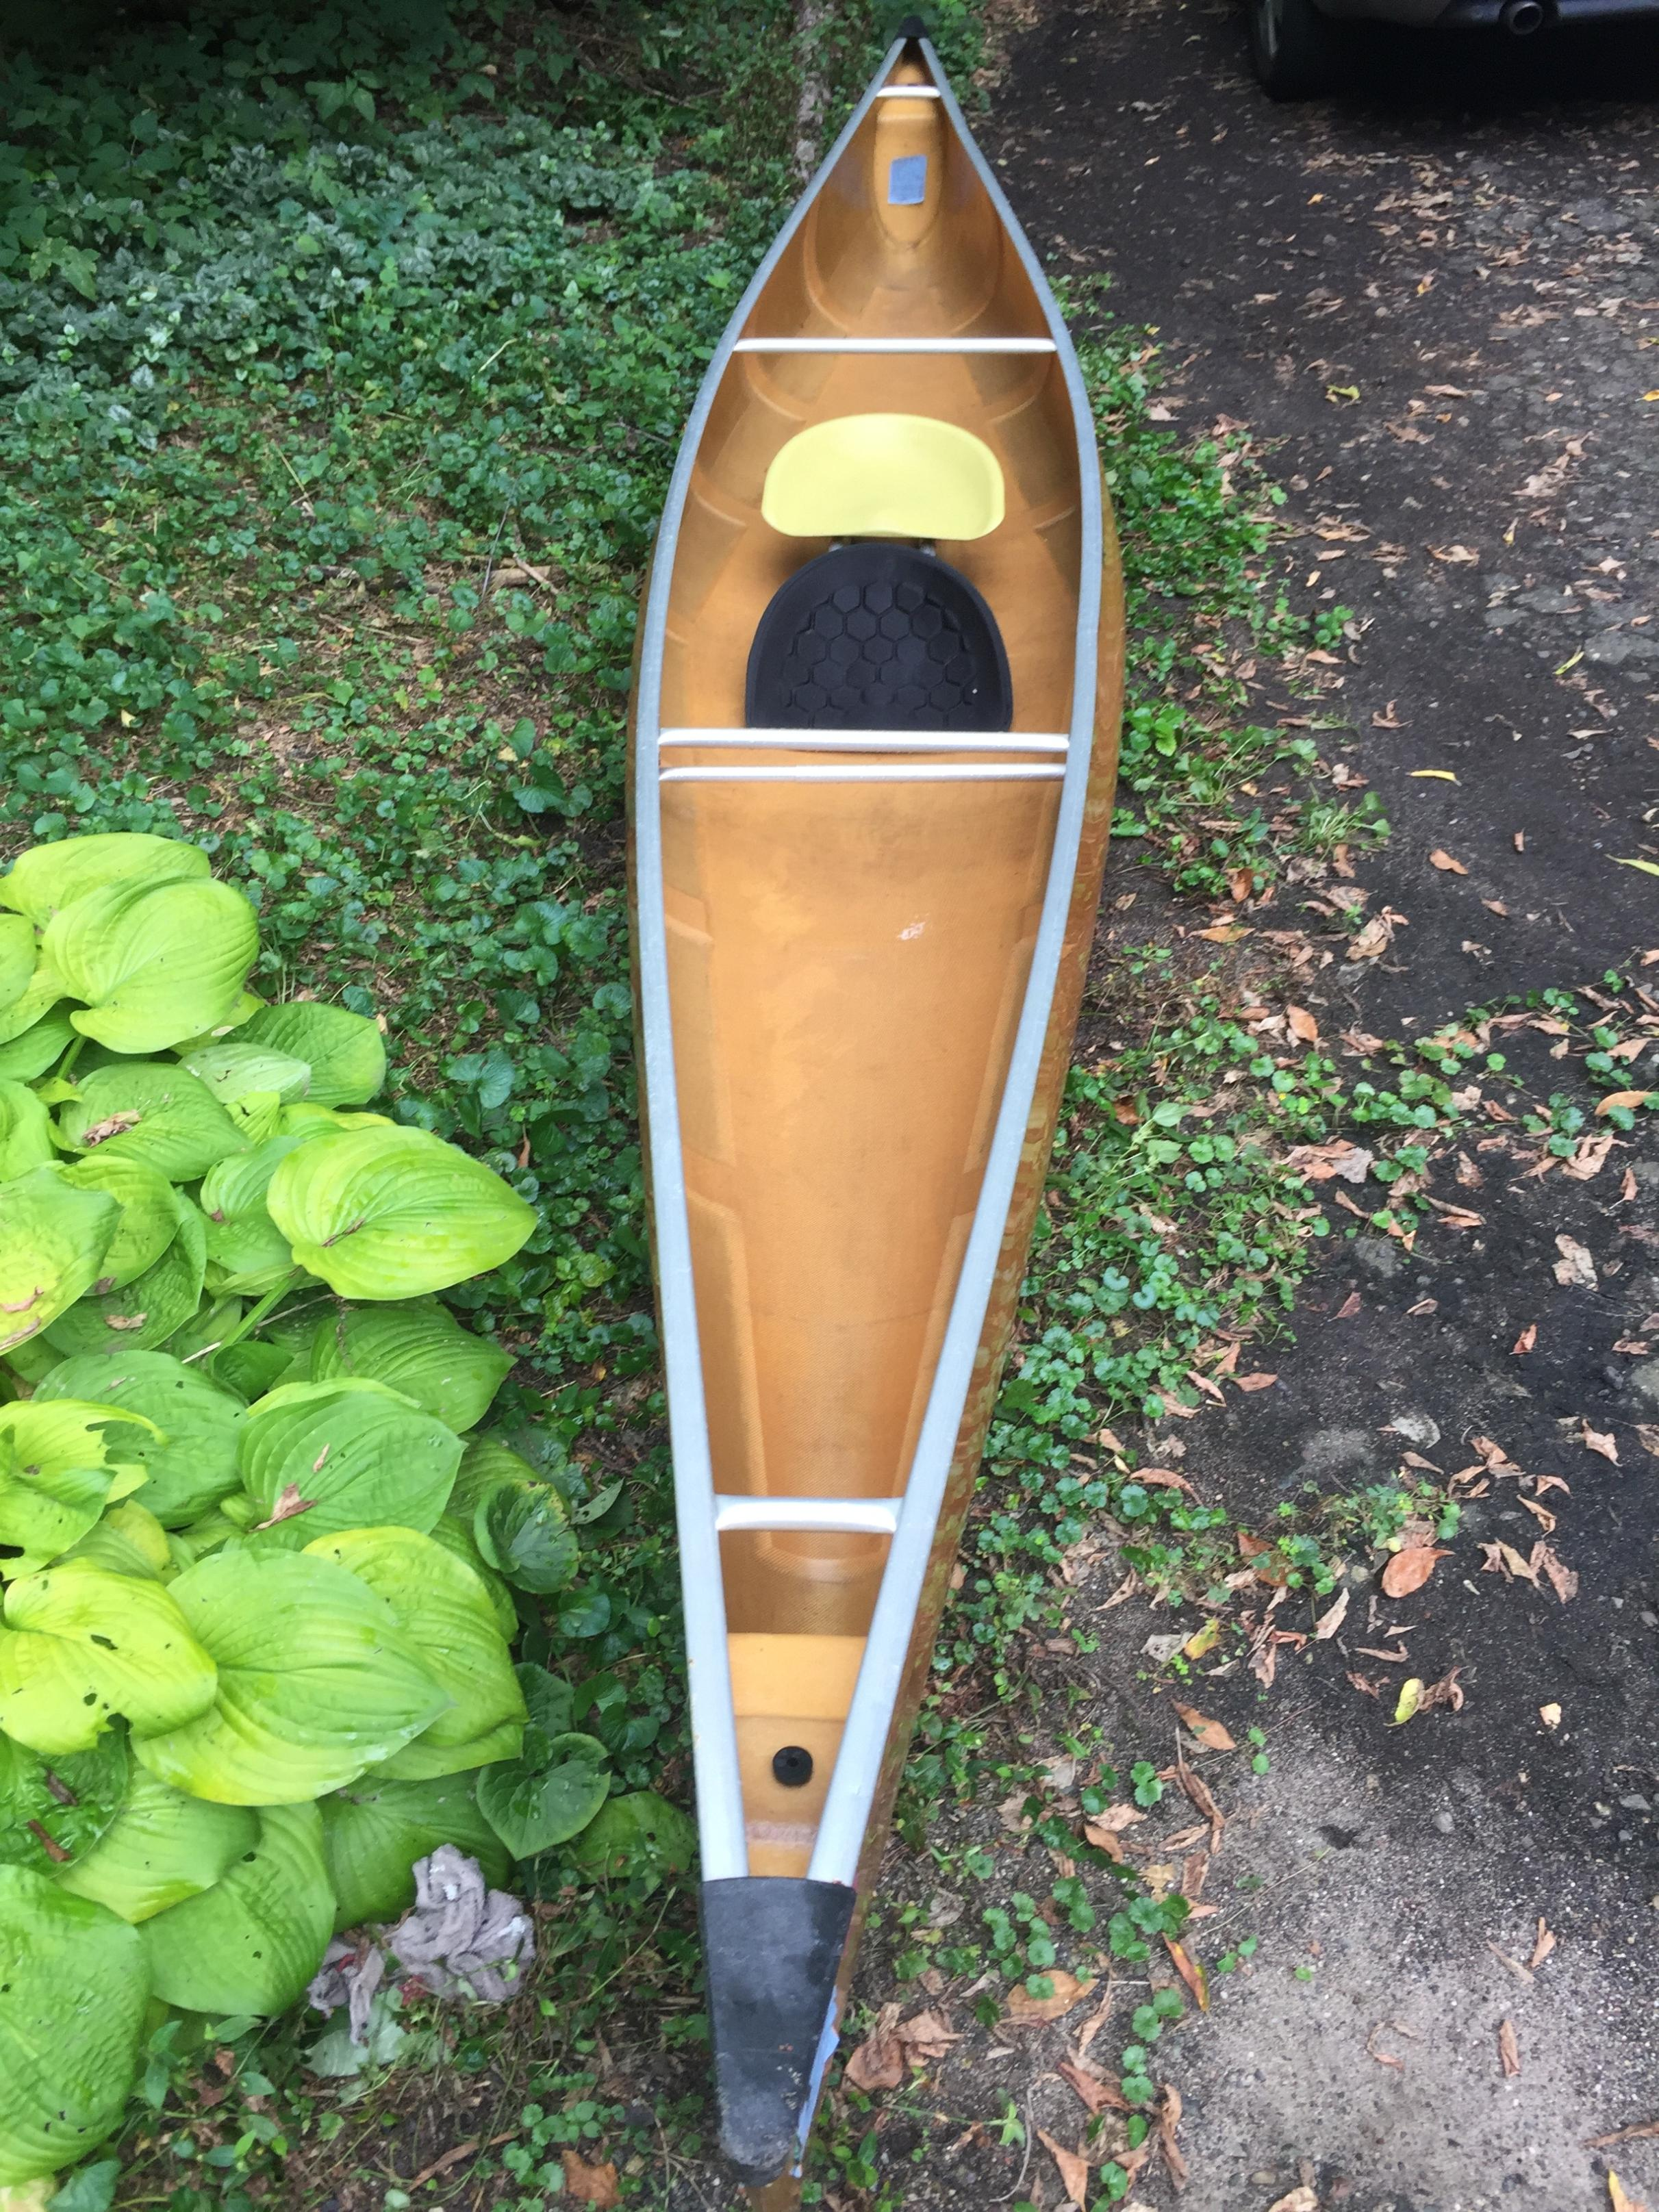 BWCA Wenonah Prism Solo Canoe Boundary Waters Items For Sale